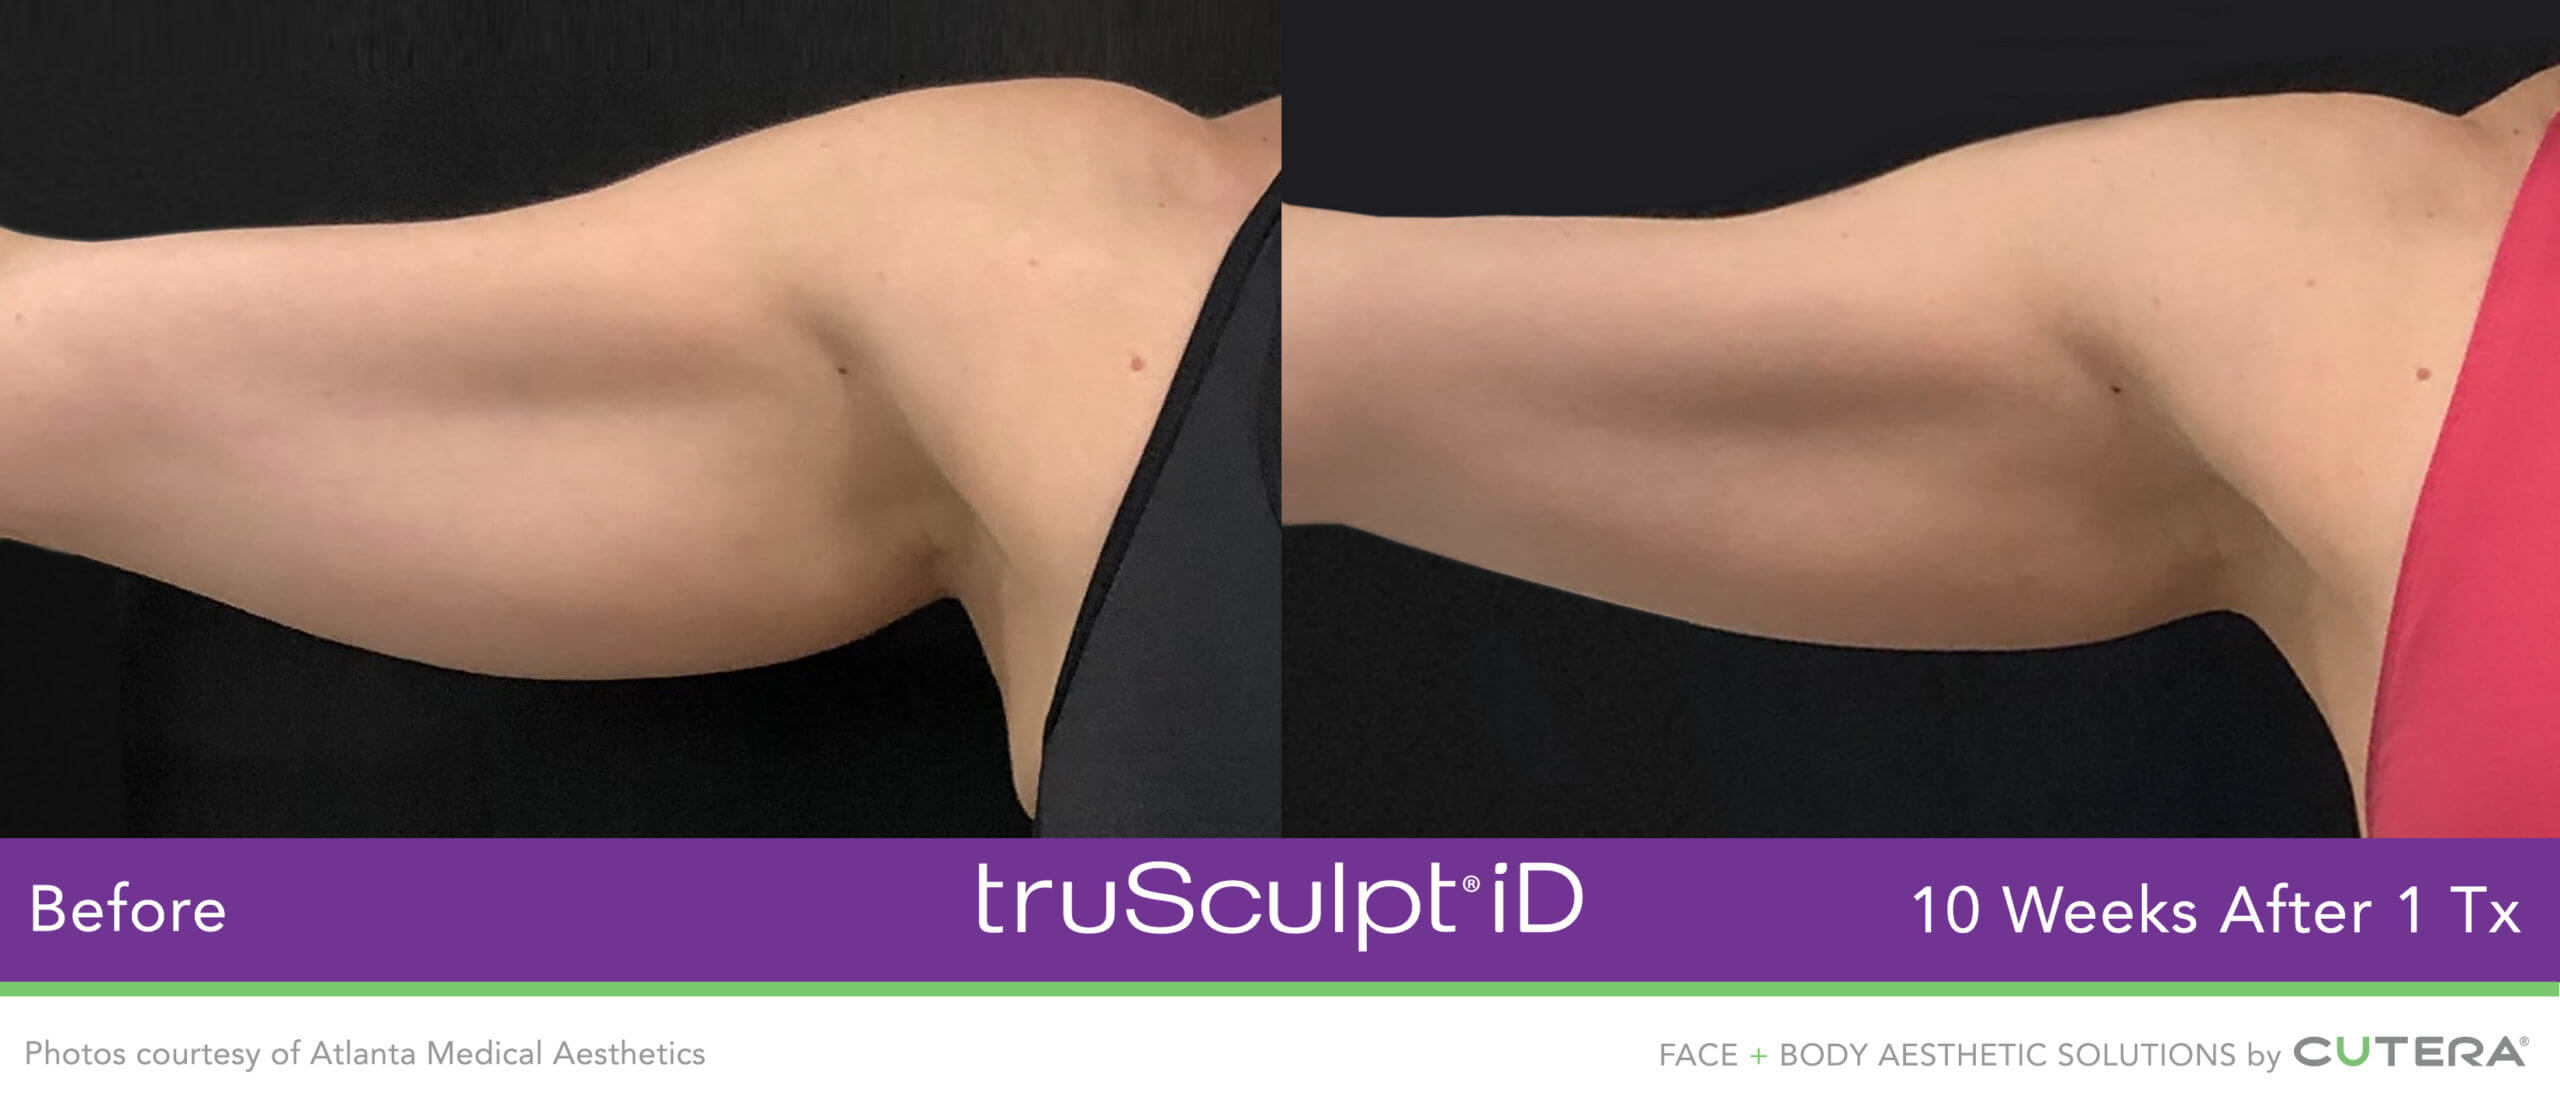 Body sculpting before and after using the truSculpt iD